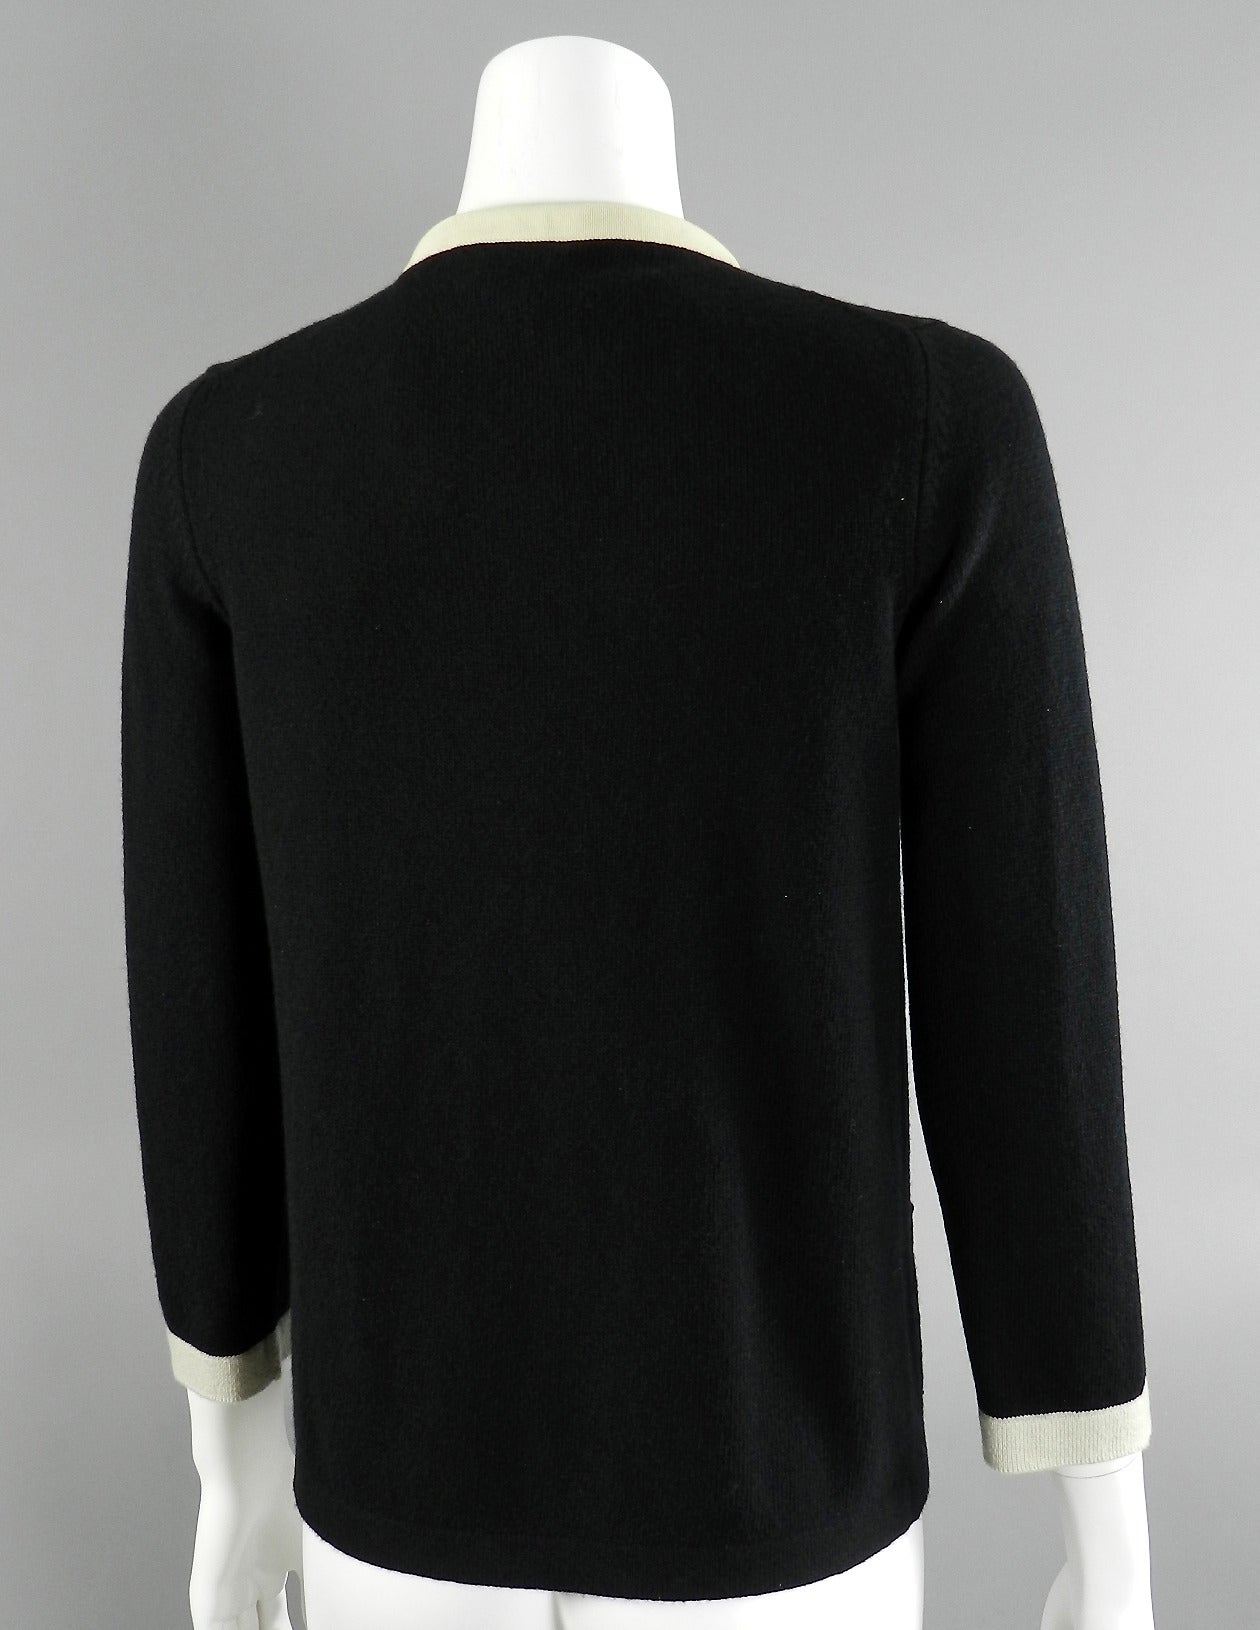 Chanel 11P Black Cashmere Cardigan with Gold Chain 3